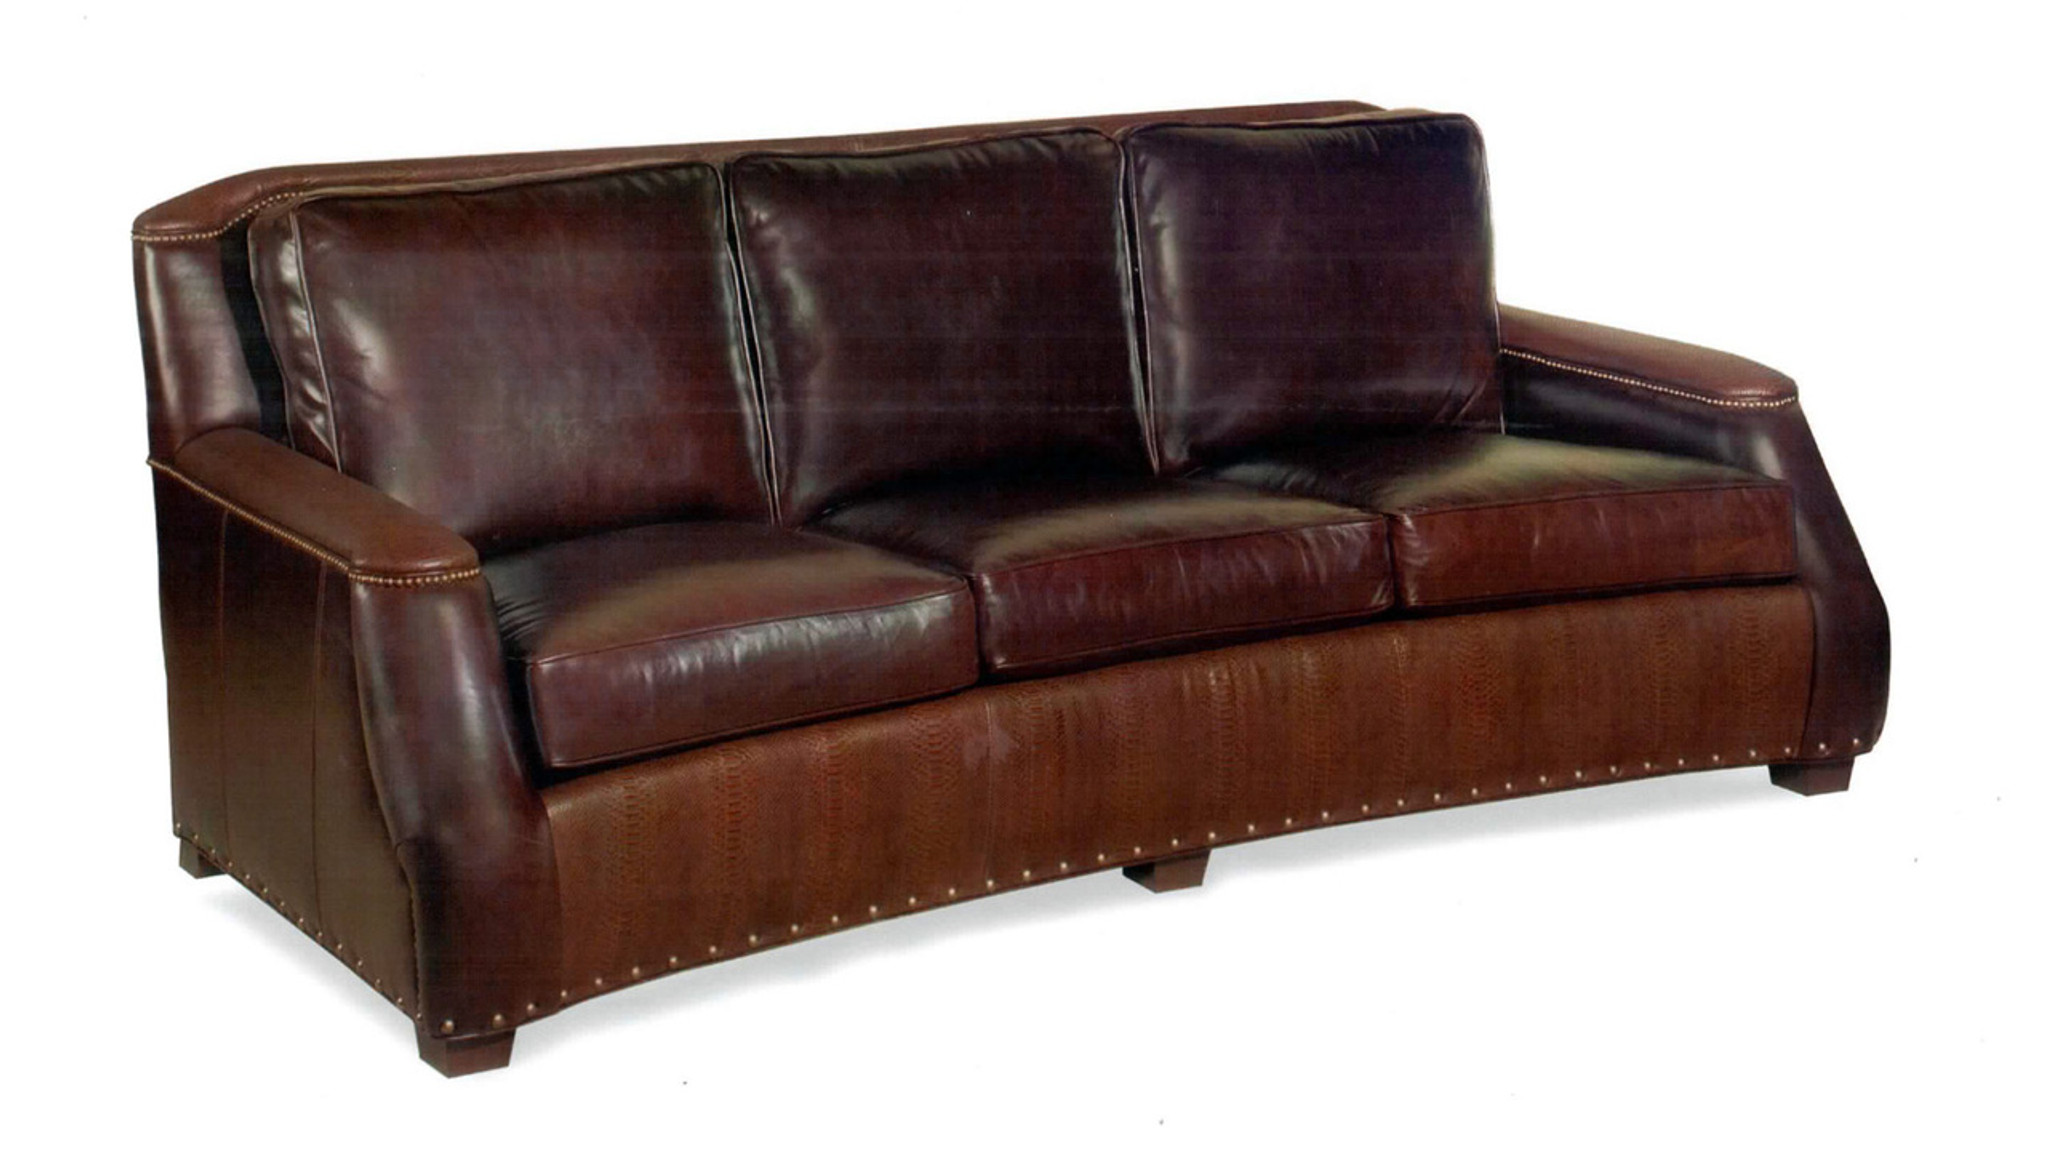 Made Sofa Velvet American Heritage Harrington Sofa 20 Off